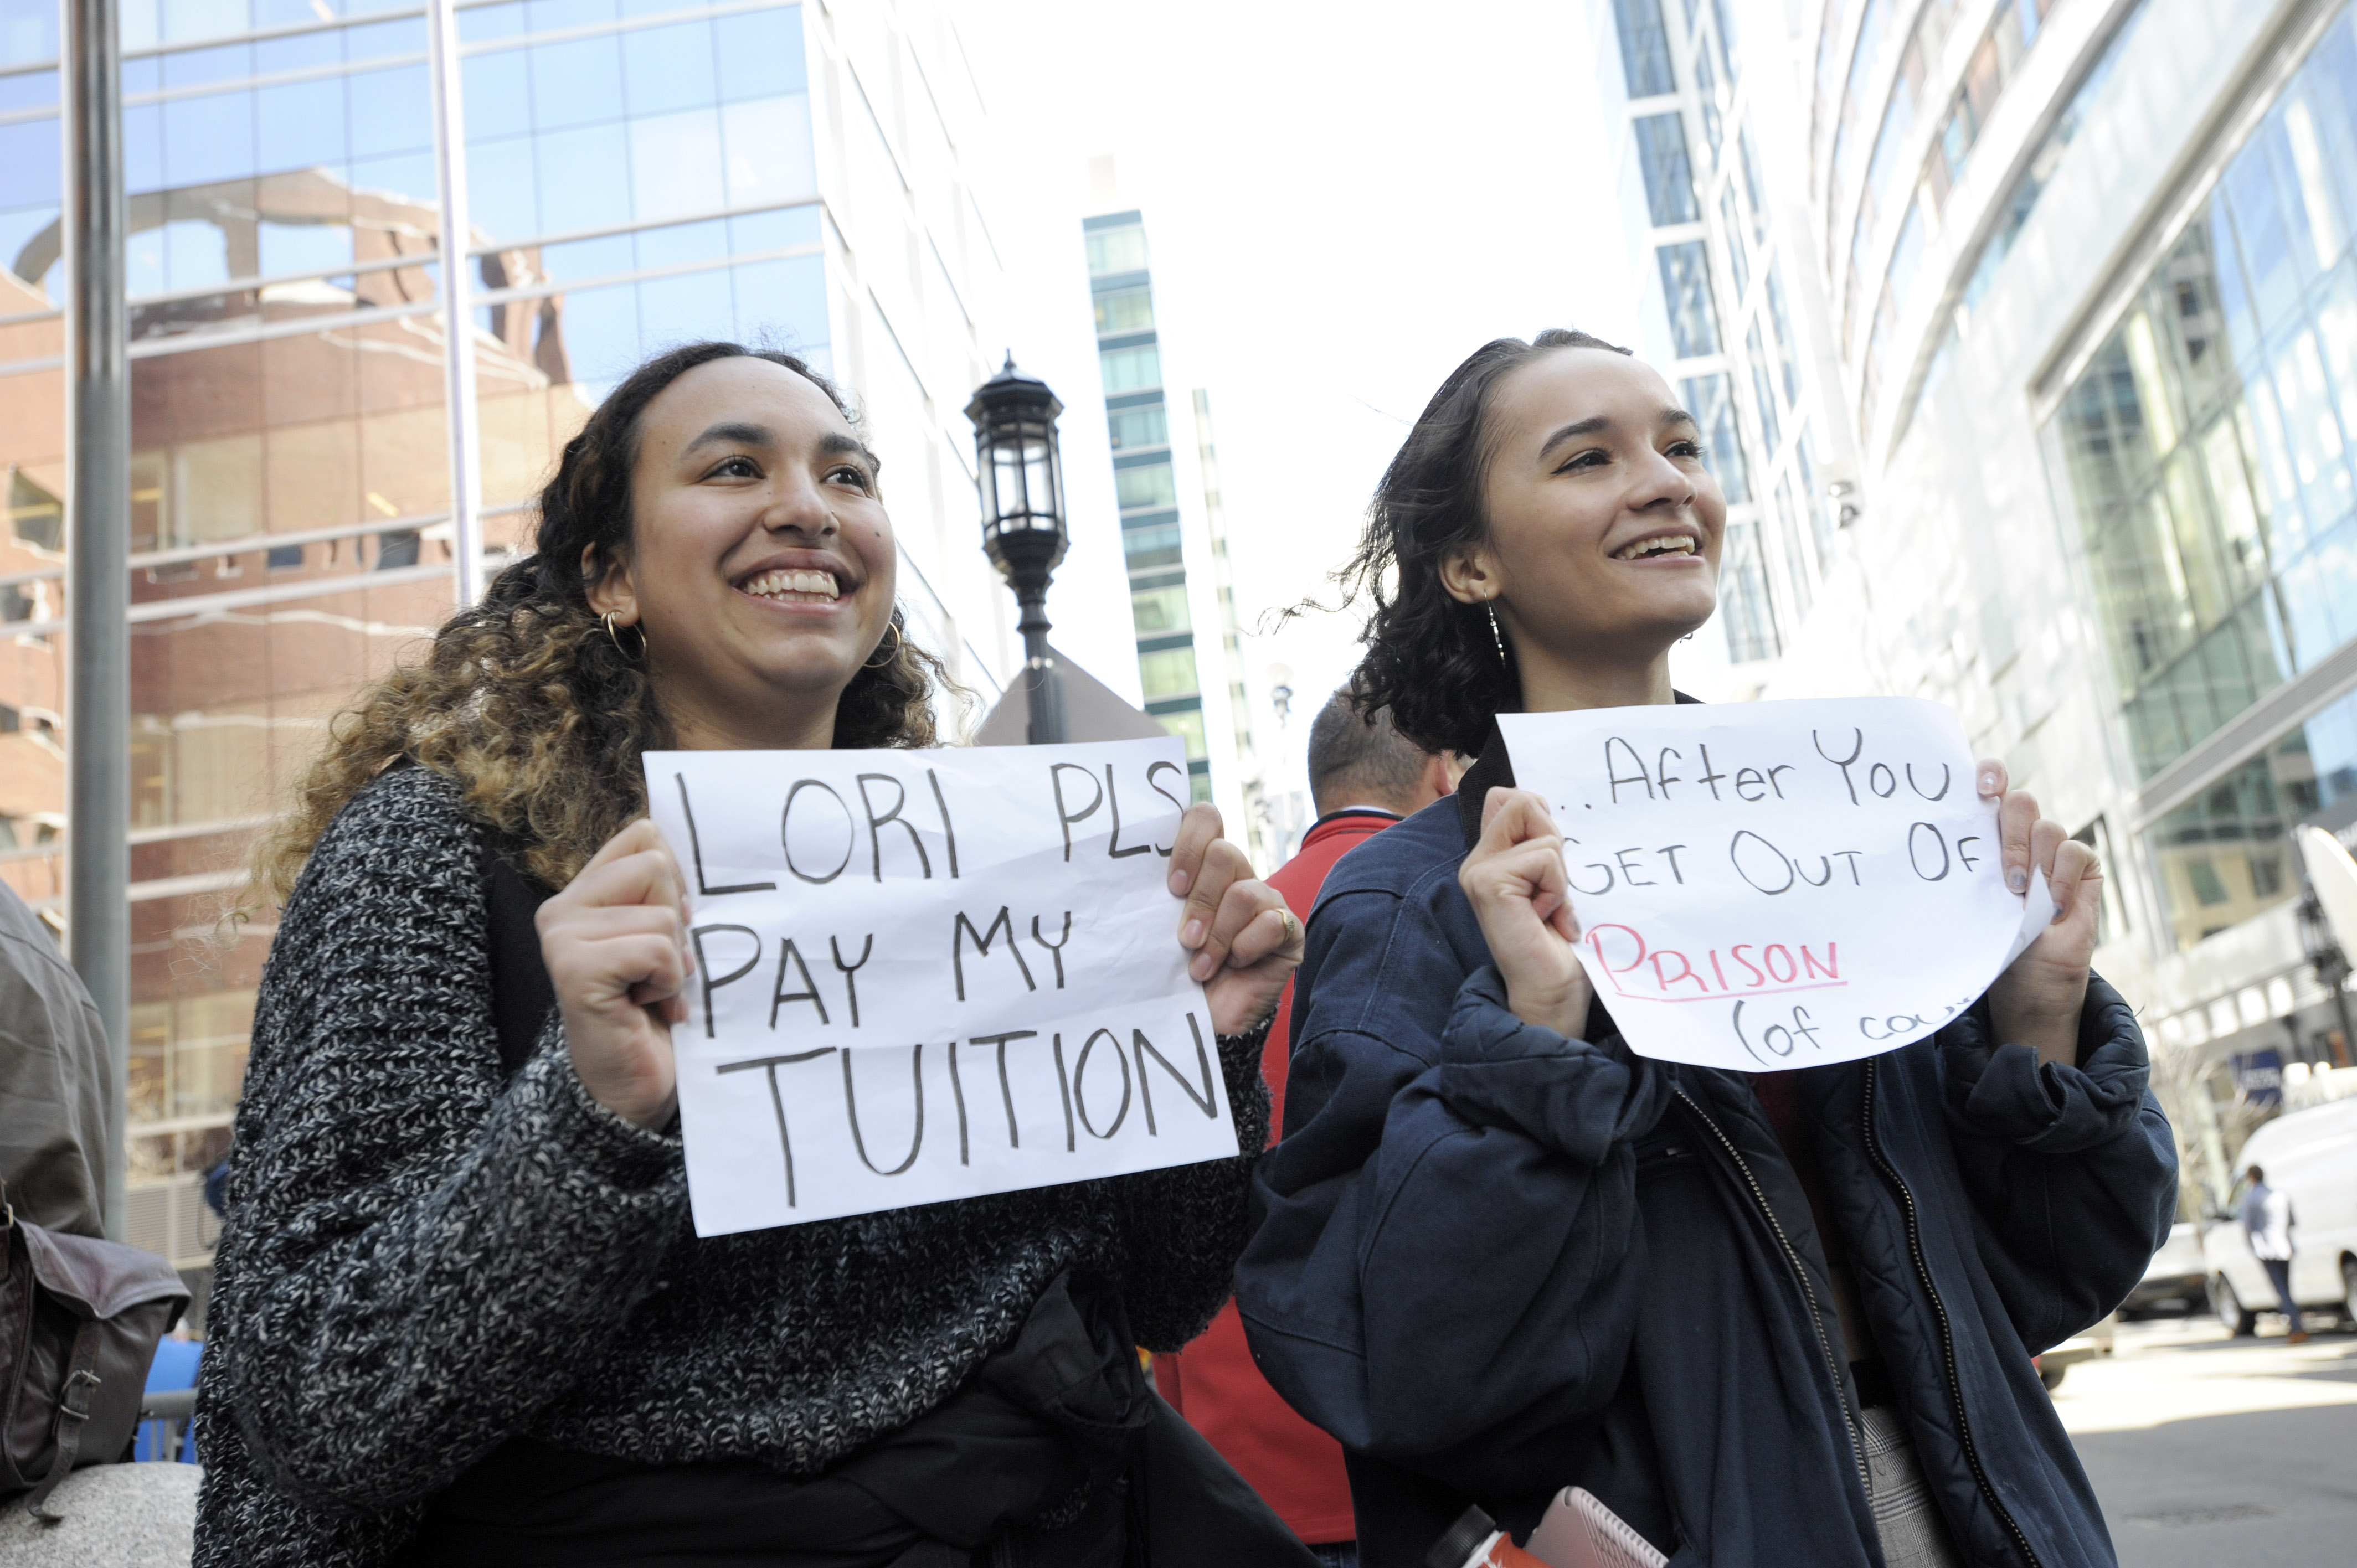 Mackenzie Thomas and Vivi Bonomie hold signs outside federal court in Boston, where actor Lori Loughlin was facing criminal charges related to a college admissions scandal, on April 3, 2019.